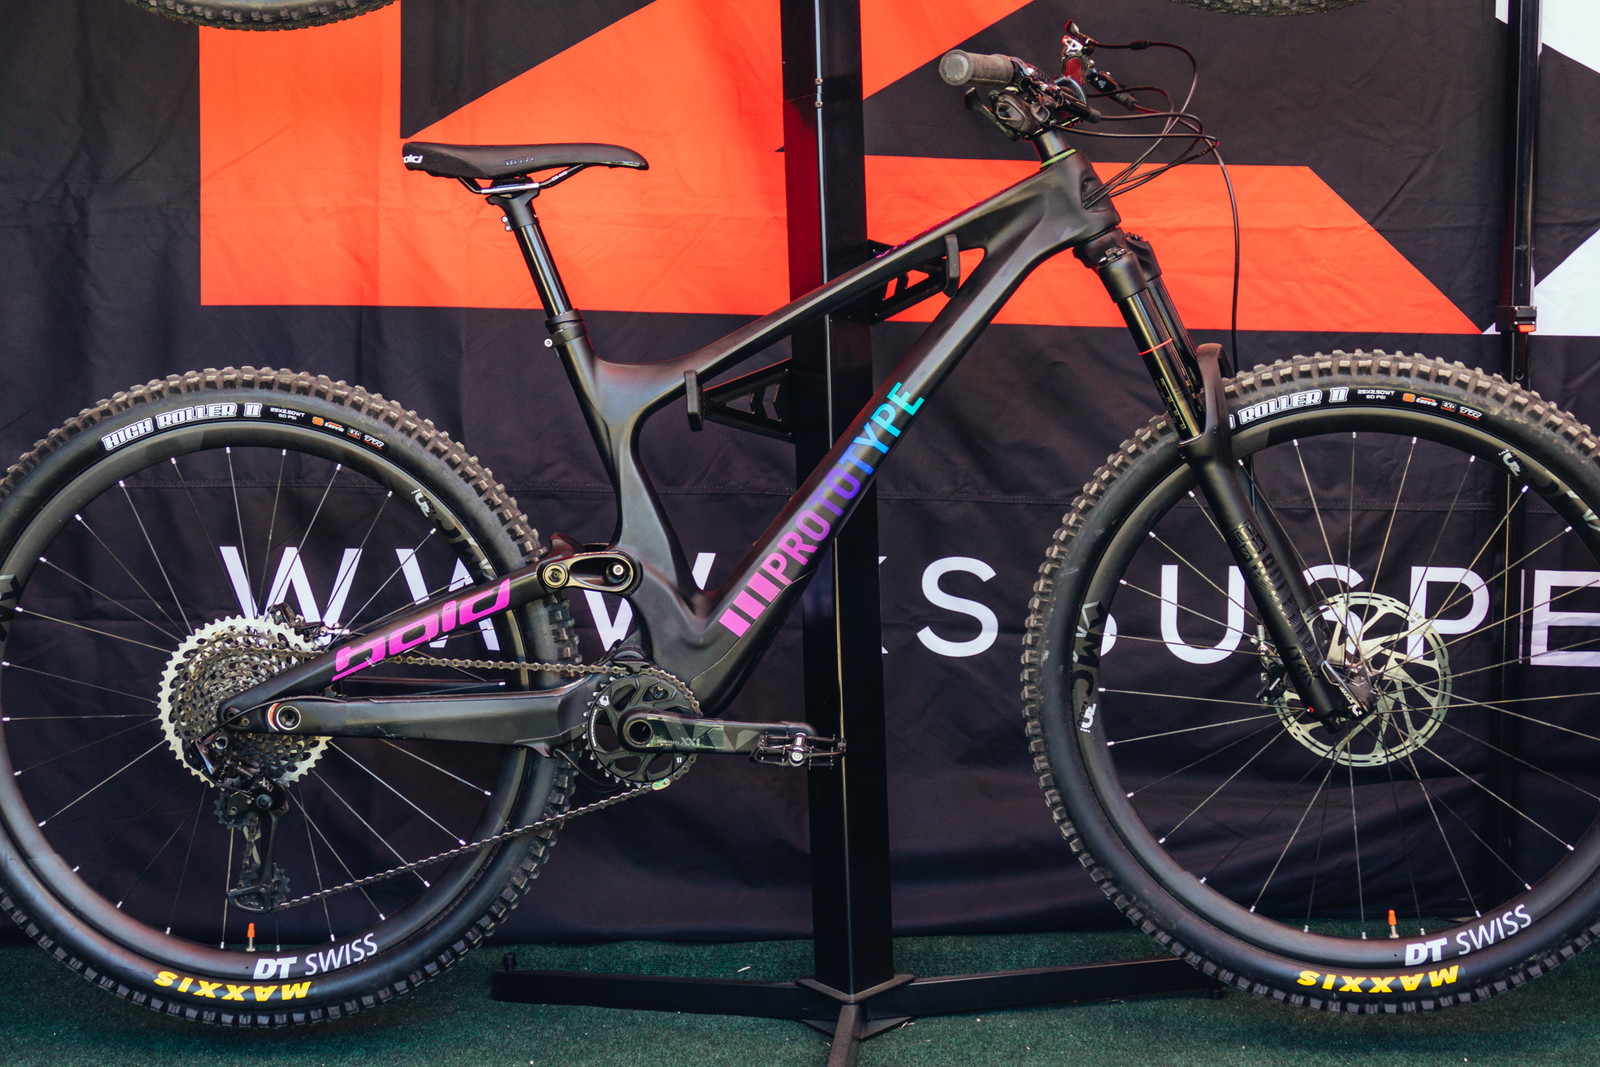 The Future of Droppers? KS Integrates Genesys Seatpost into Prototype Bold Frame - Sea Otter Classic